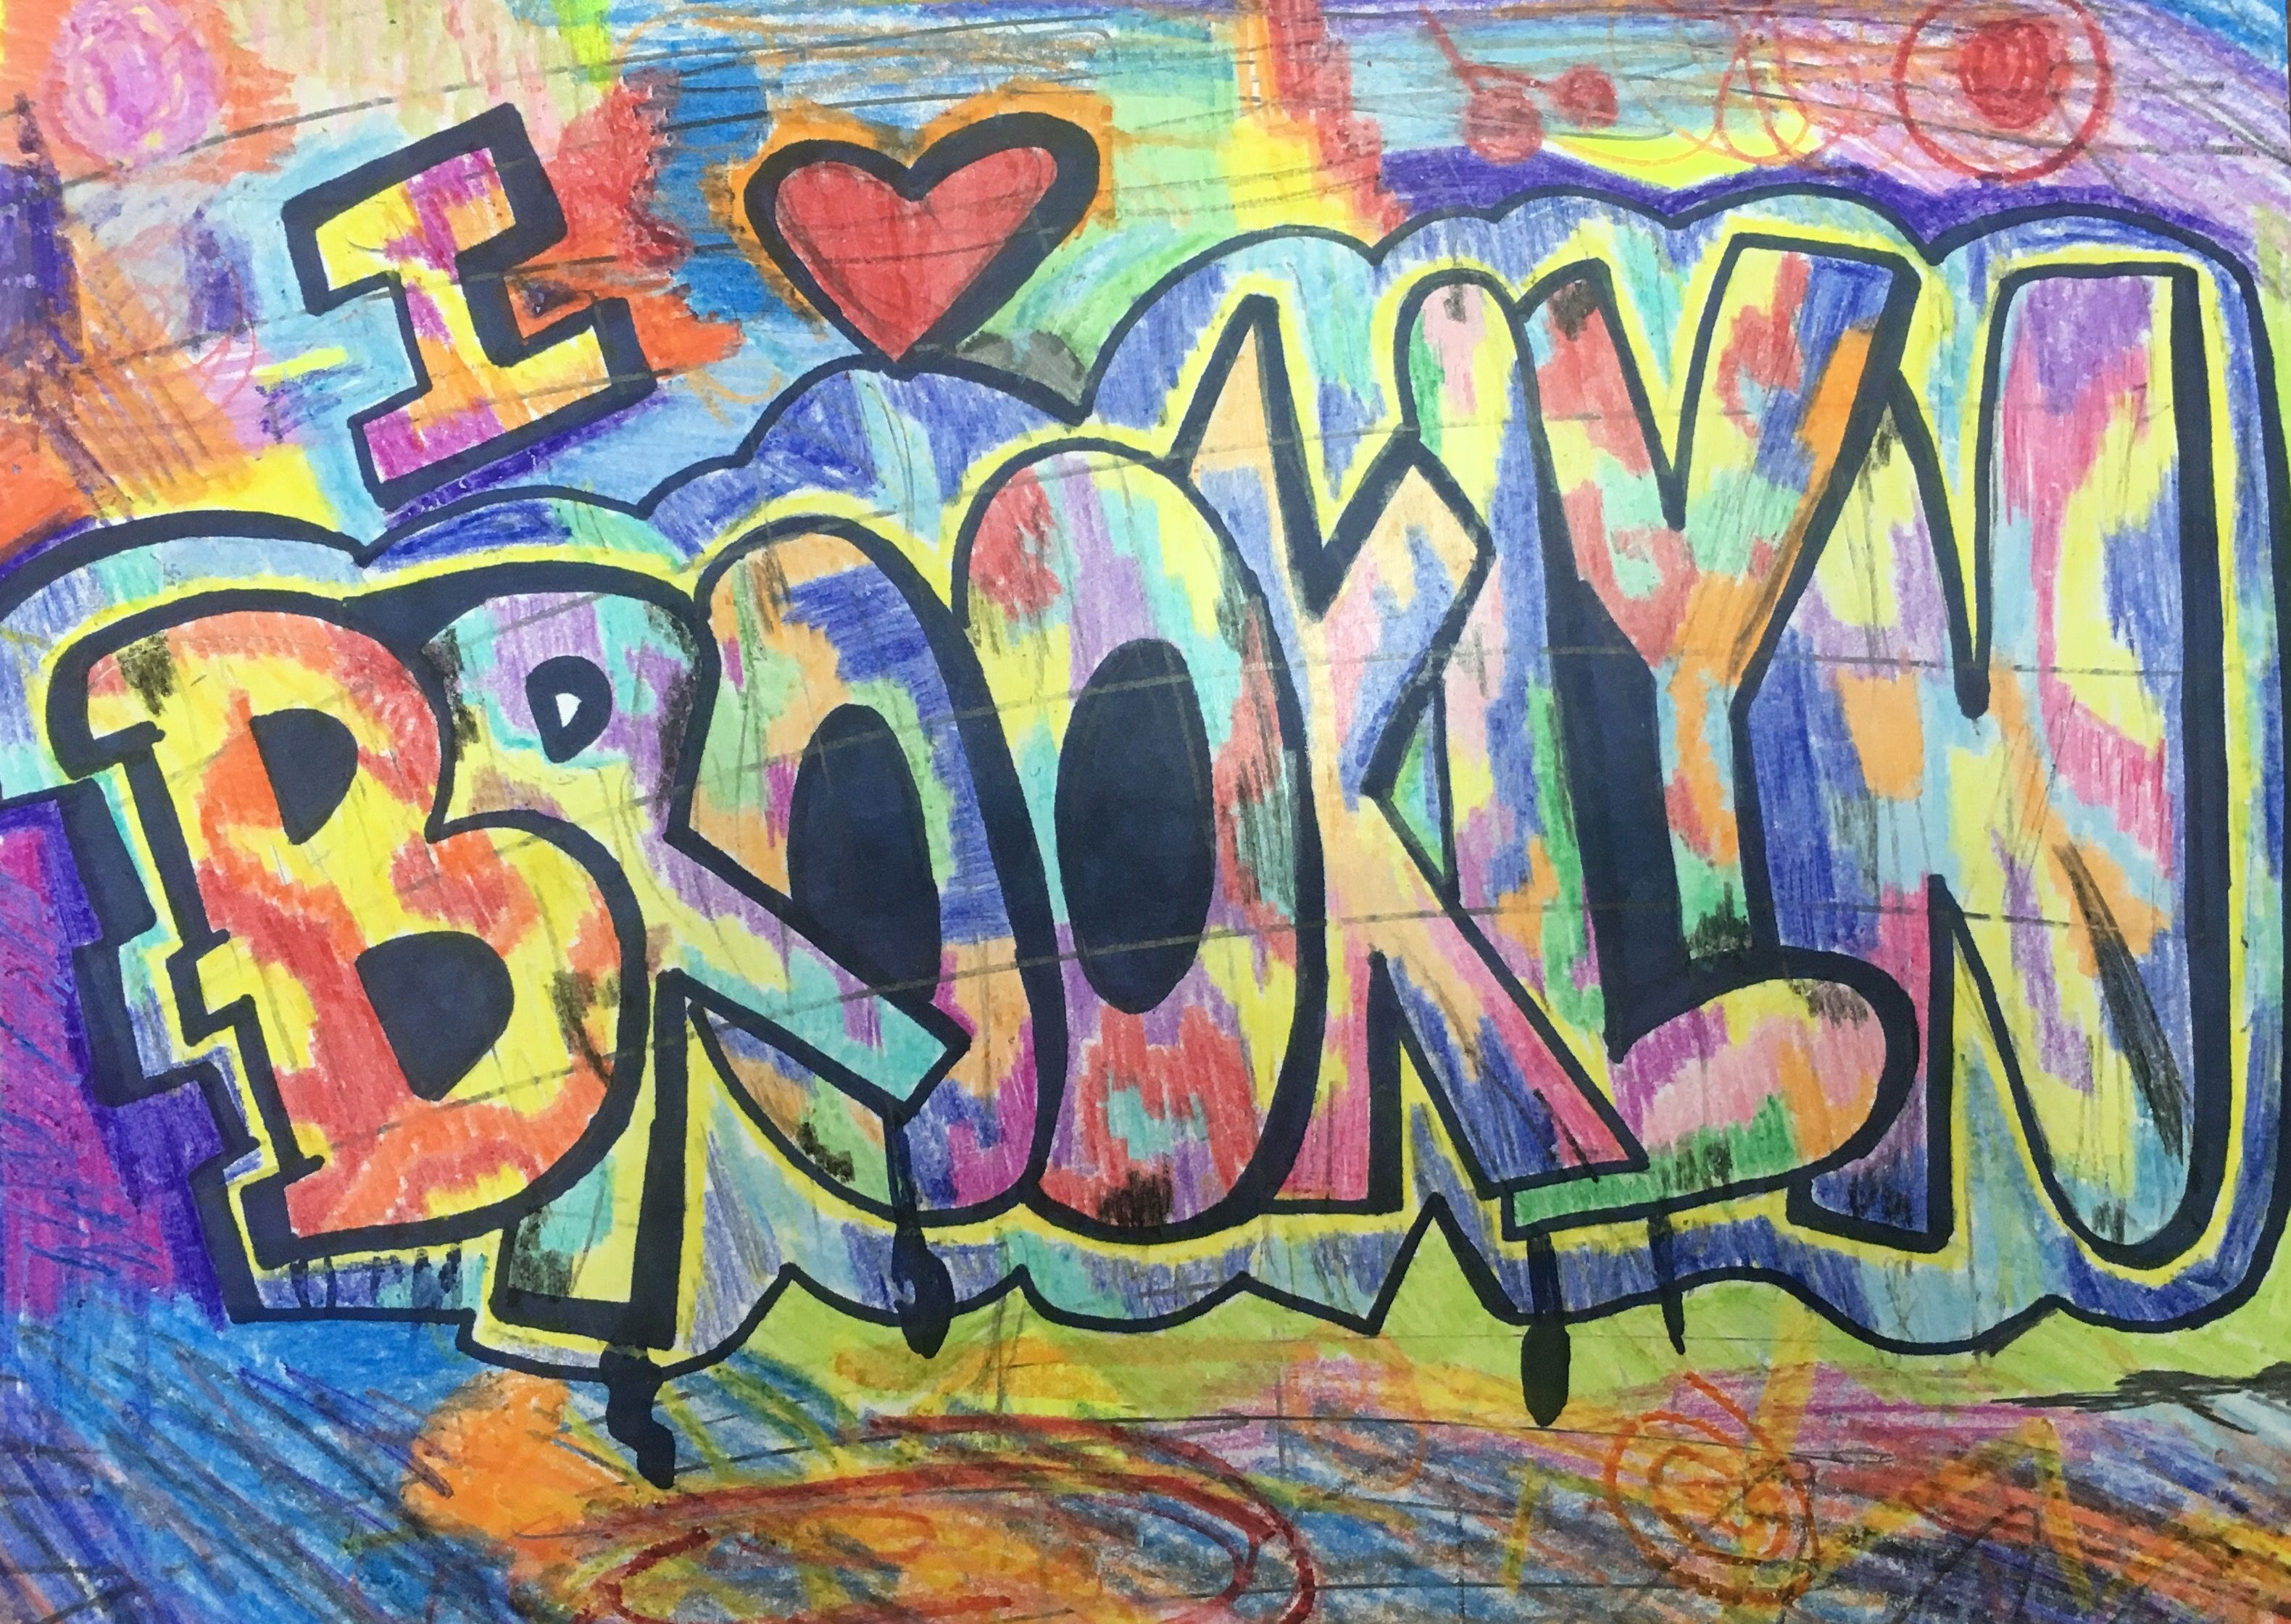 Graffiti Name Art BROOKLYN by one of my Students from